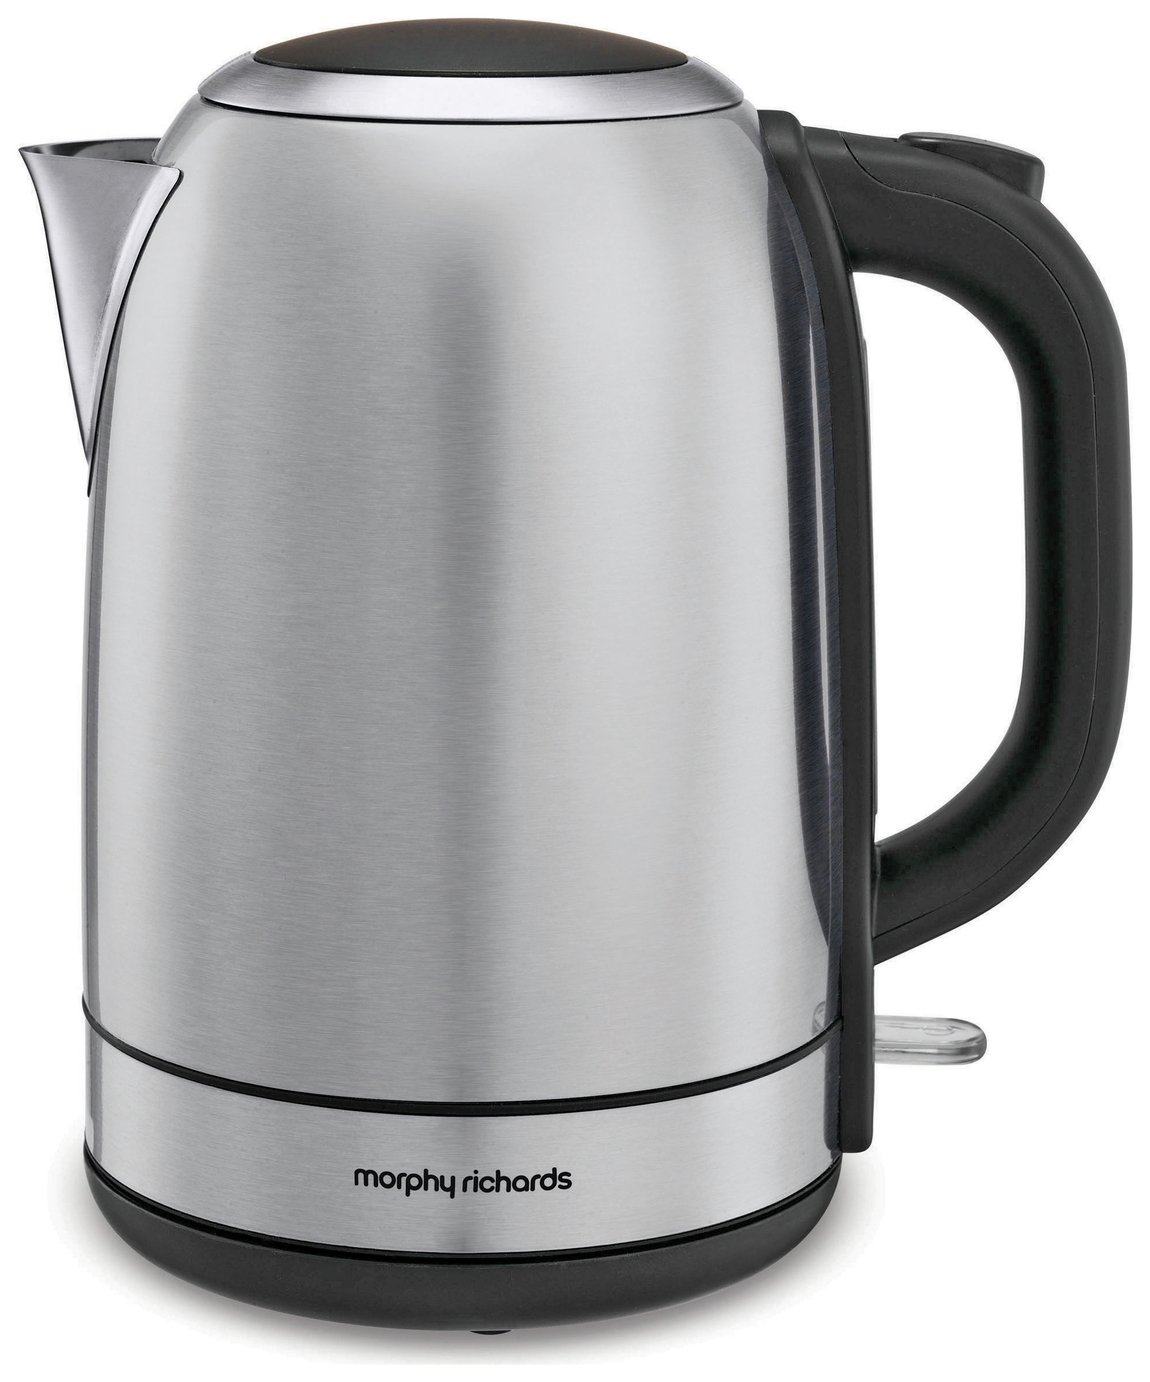 Morphy Richards 102779 Equip Kettle - Stainless Steel